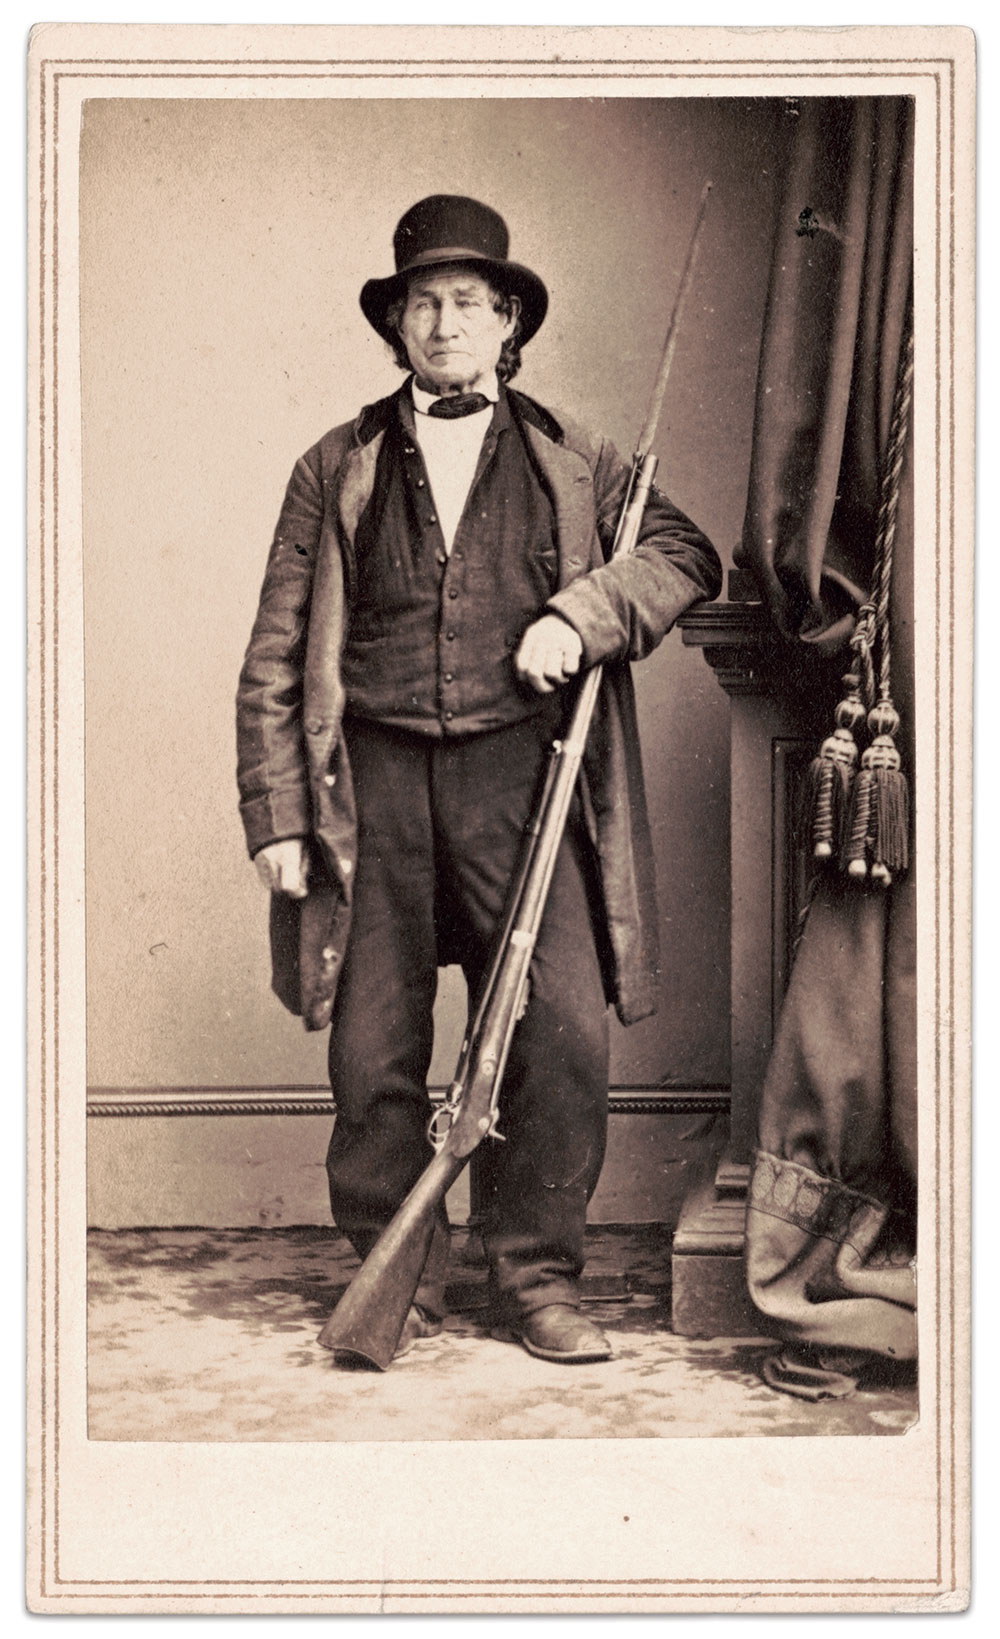 """John Lawrence Burns (1793-1872) became a celebrity known as the """"Old Hero of Gettysburg"""" across the north. Carte de visite by Mathew B. Brady of New York and Washington, D.C."""